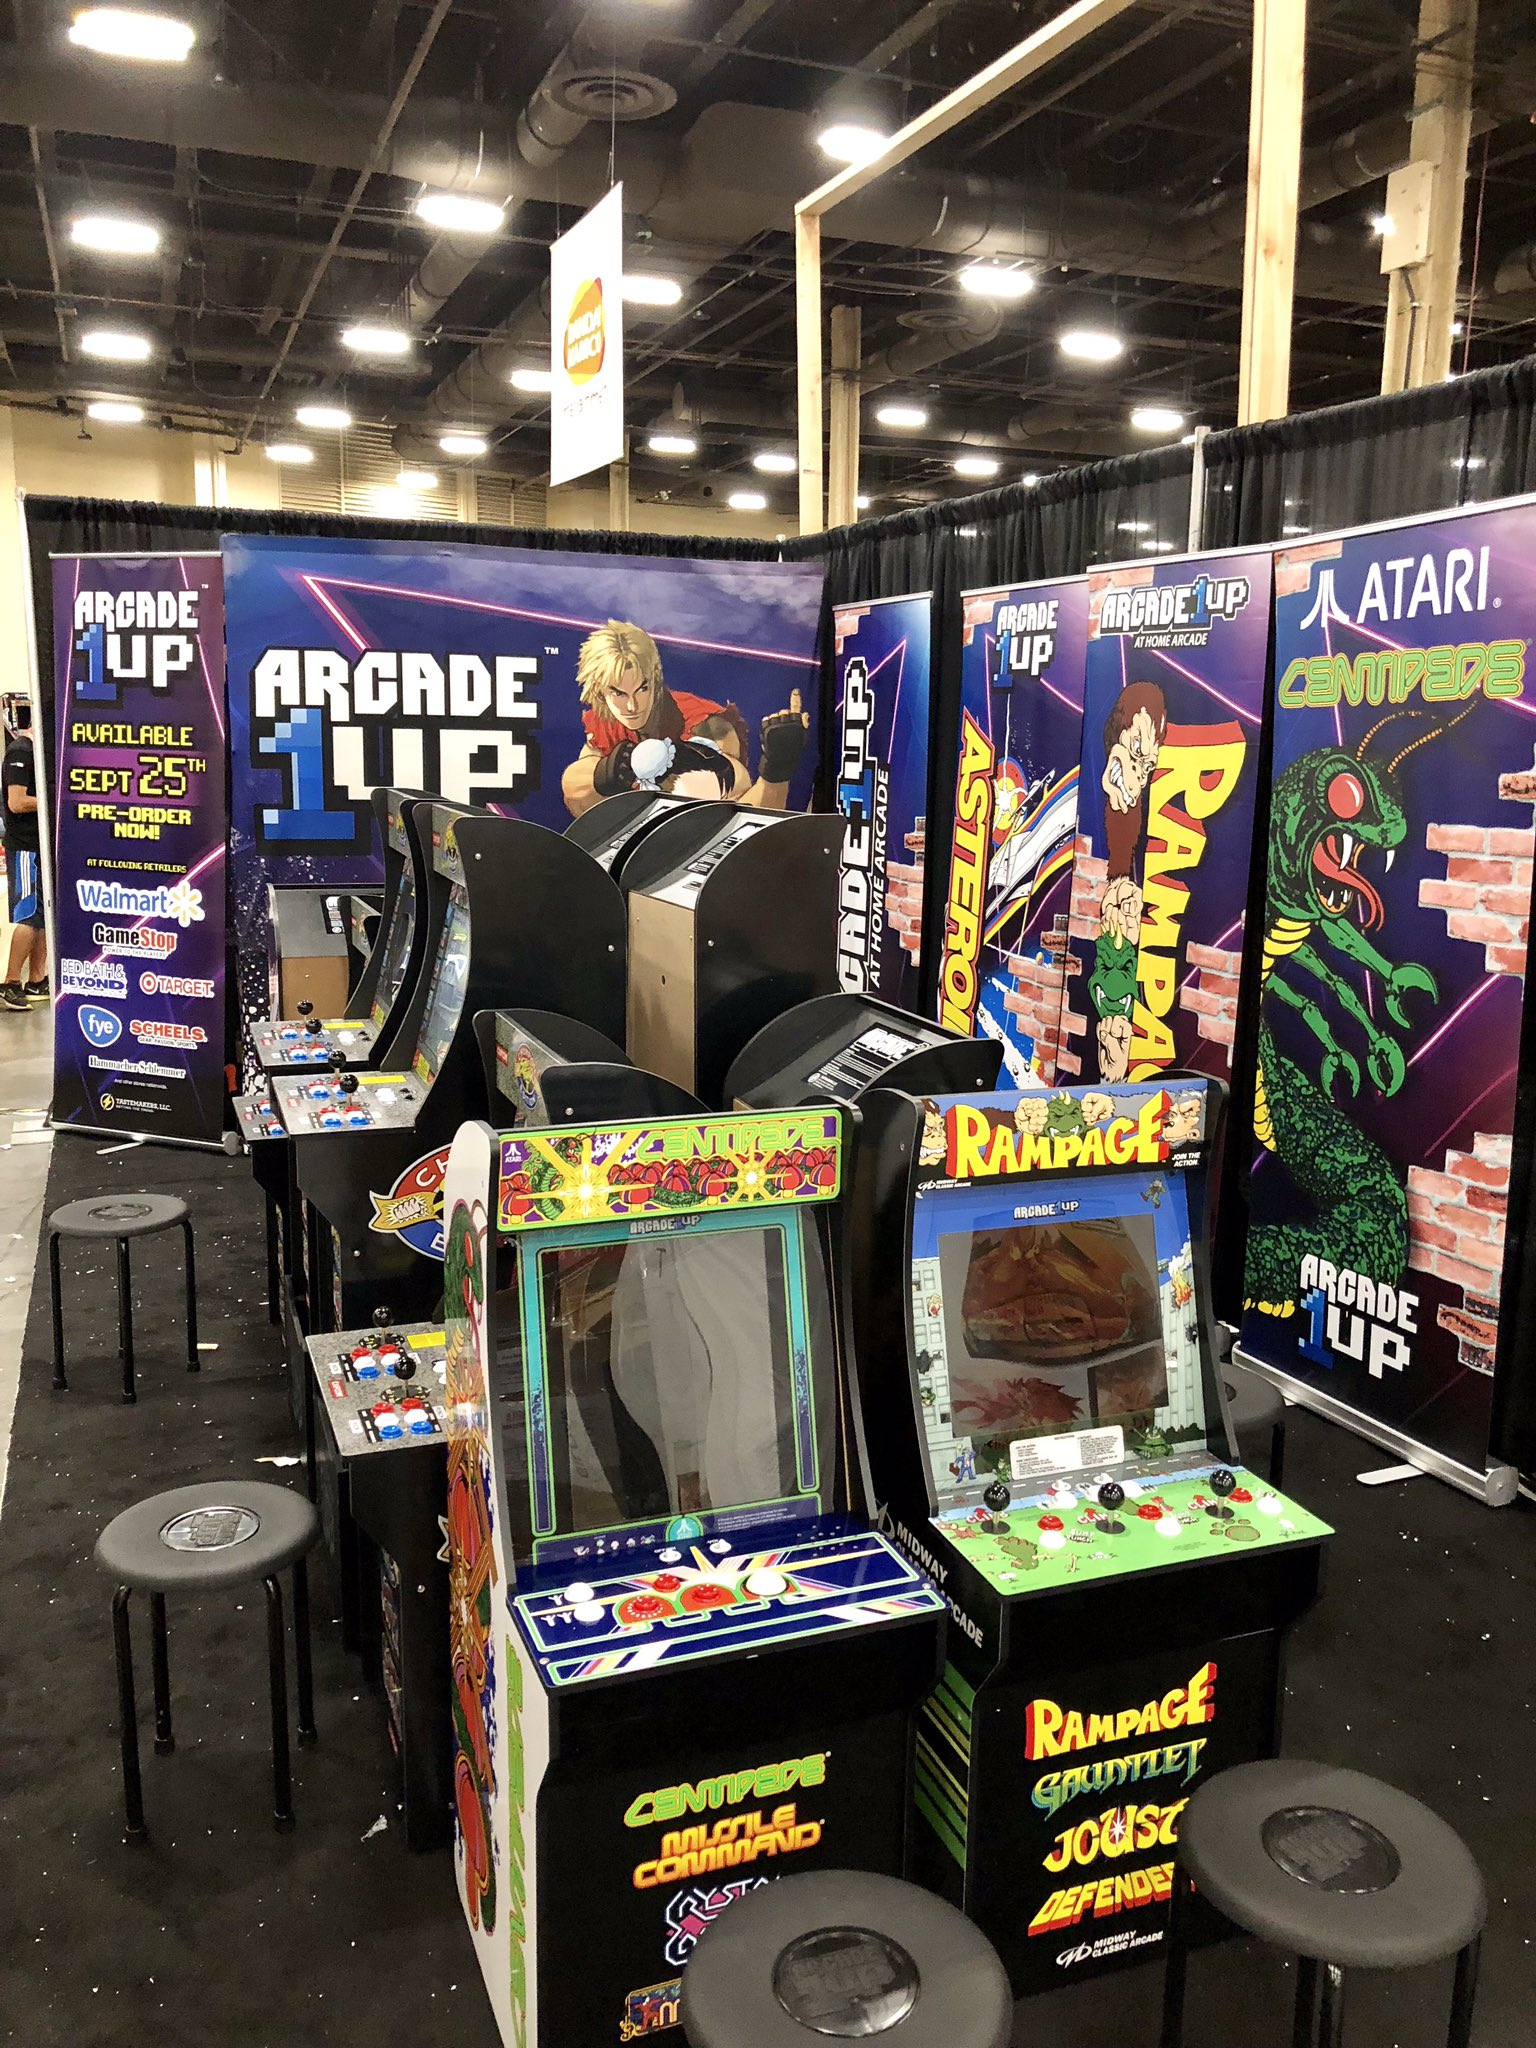 Arcade 1up Official On Twitter Quot Here S A Sneak Peek At